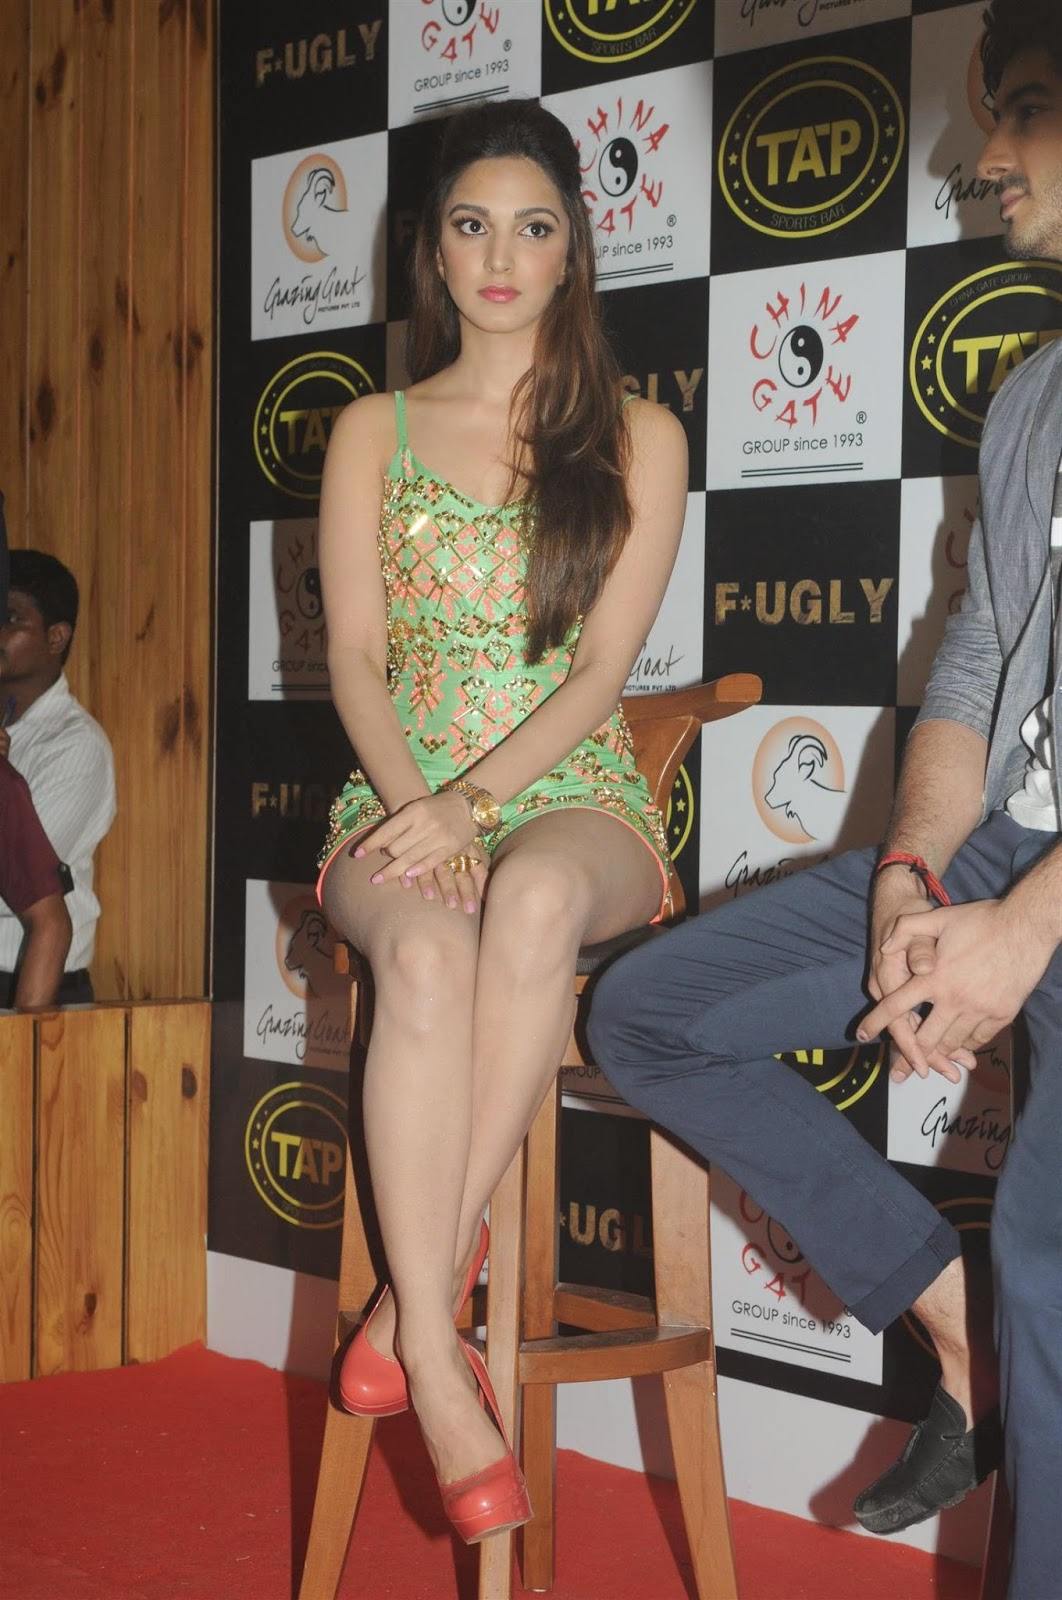 "<div>Kiara Advani Smoking Hot Legs Show At Film ""Fugly' Promotions In Mumbai ❤ ❤  ❤</div>"